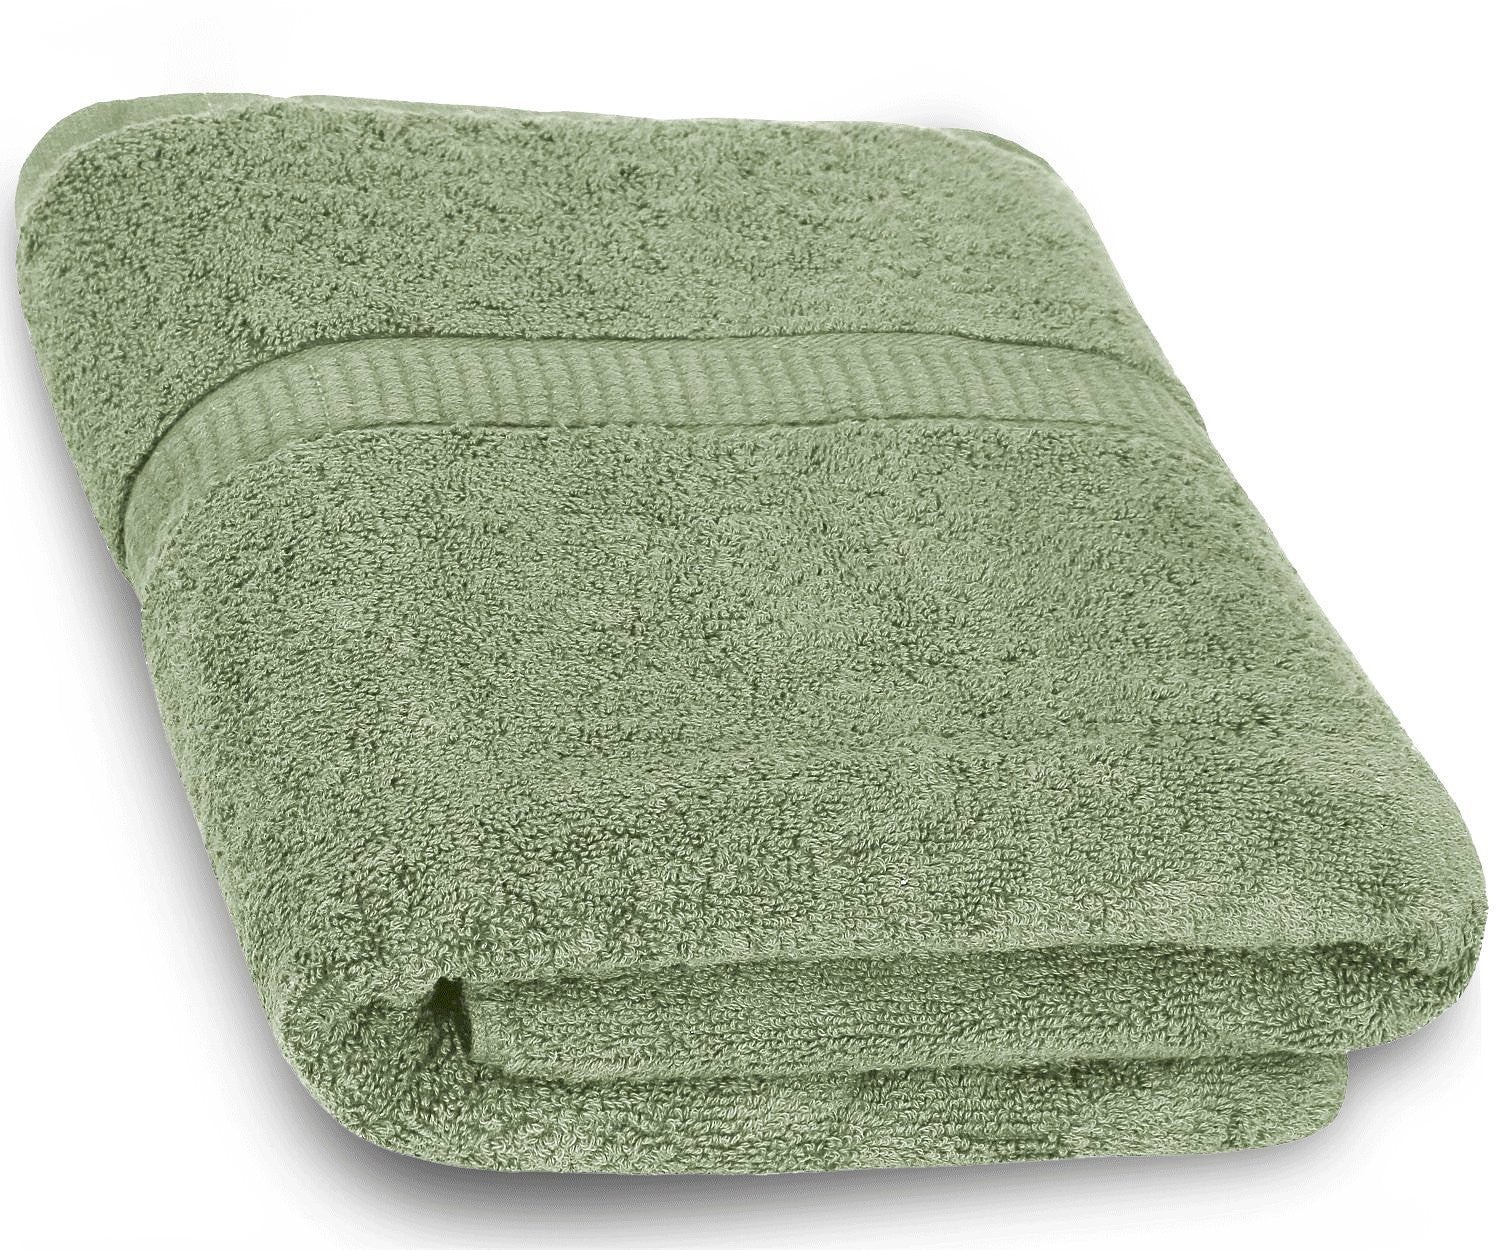 Cotton Luxury Bath Towel - Sage Green